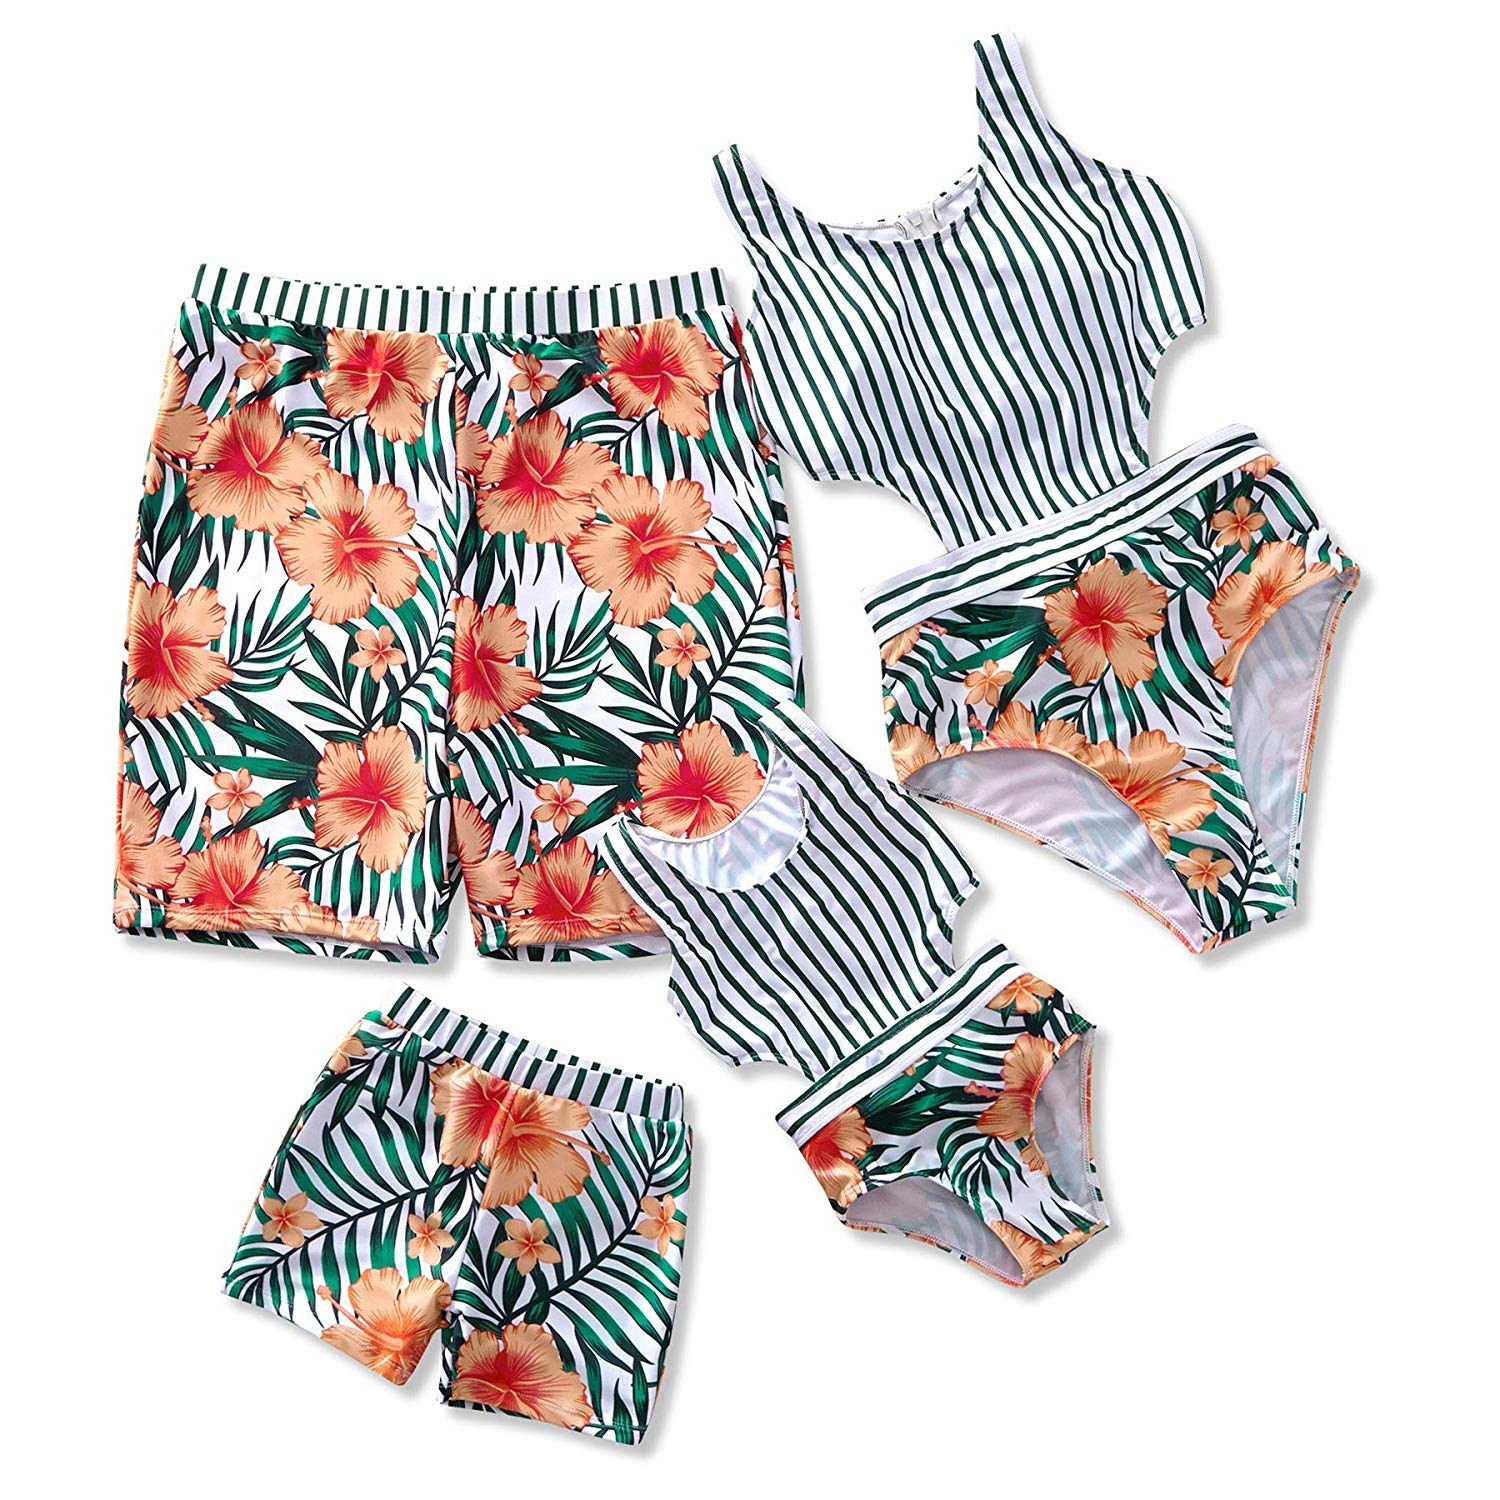 Yaffi Family Matching Swimwear 2019 Newest One Piece Floral Printed Bathing Suit Tank Top Striped Beachwear Women: M by Yaffi